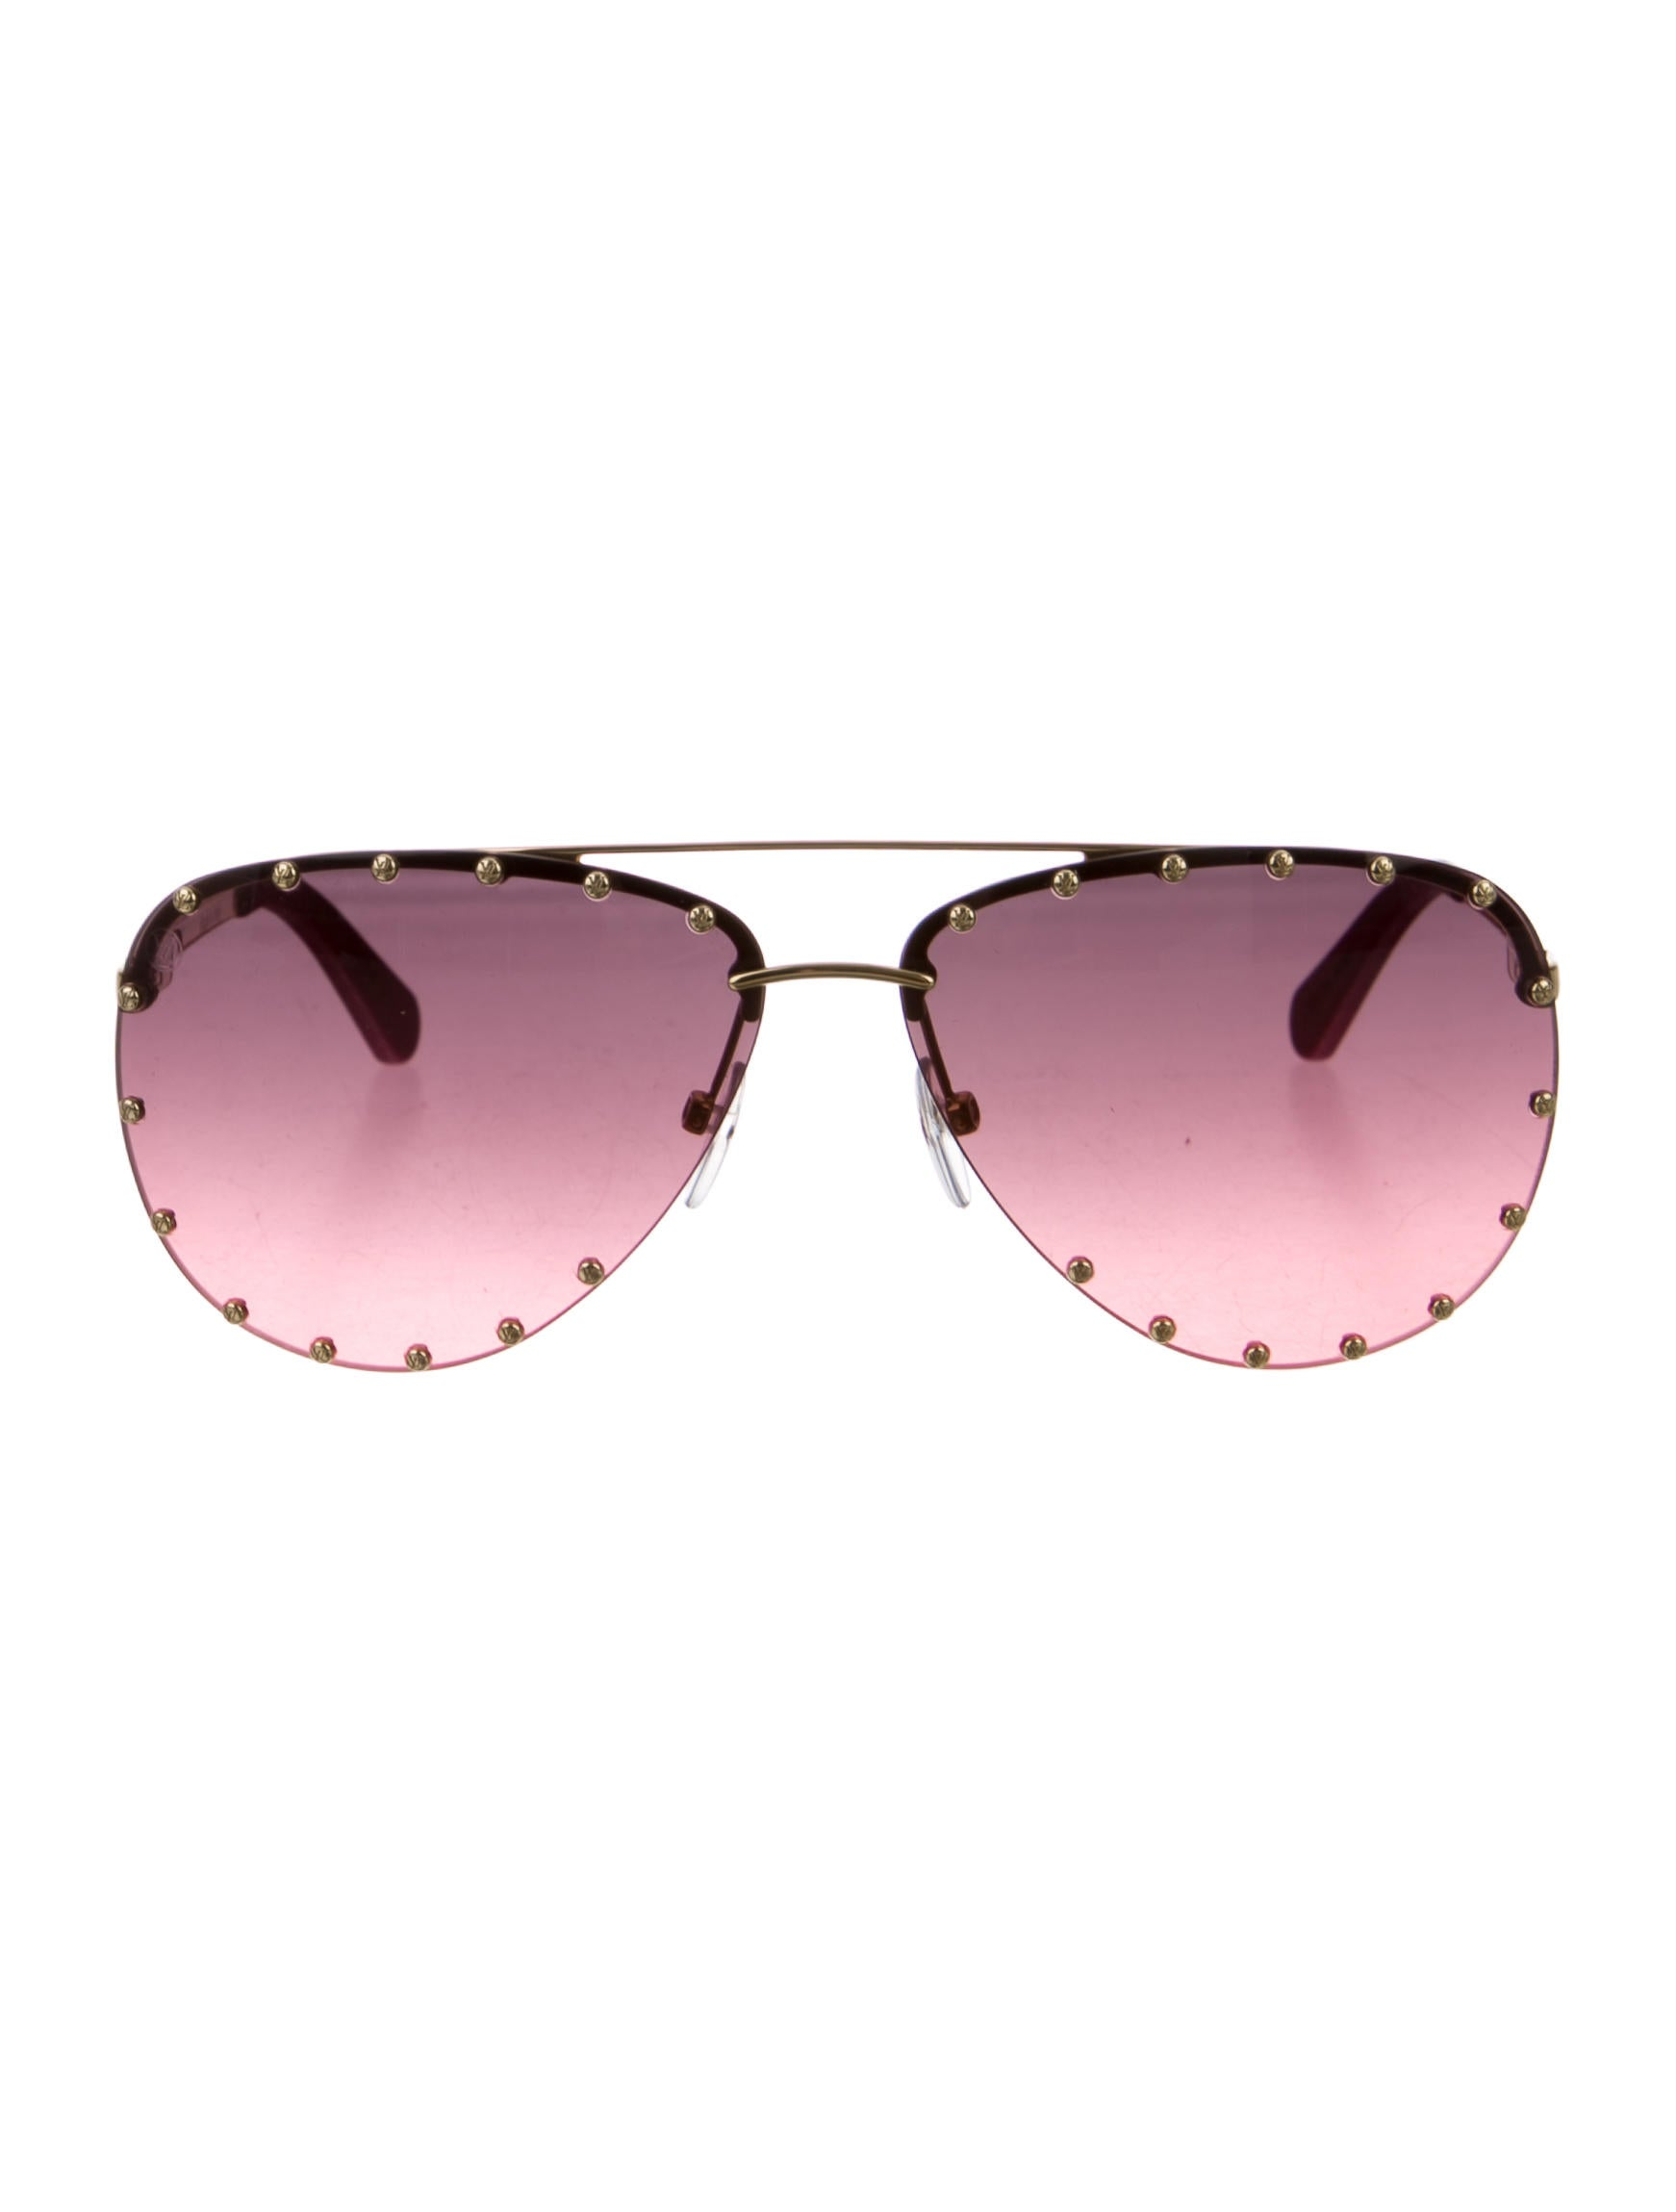 5154a69ed0be Louis Vuitton 2017 The Party Aviator Sunglasses - Accessories ...